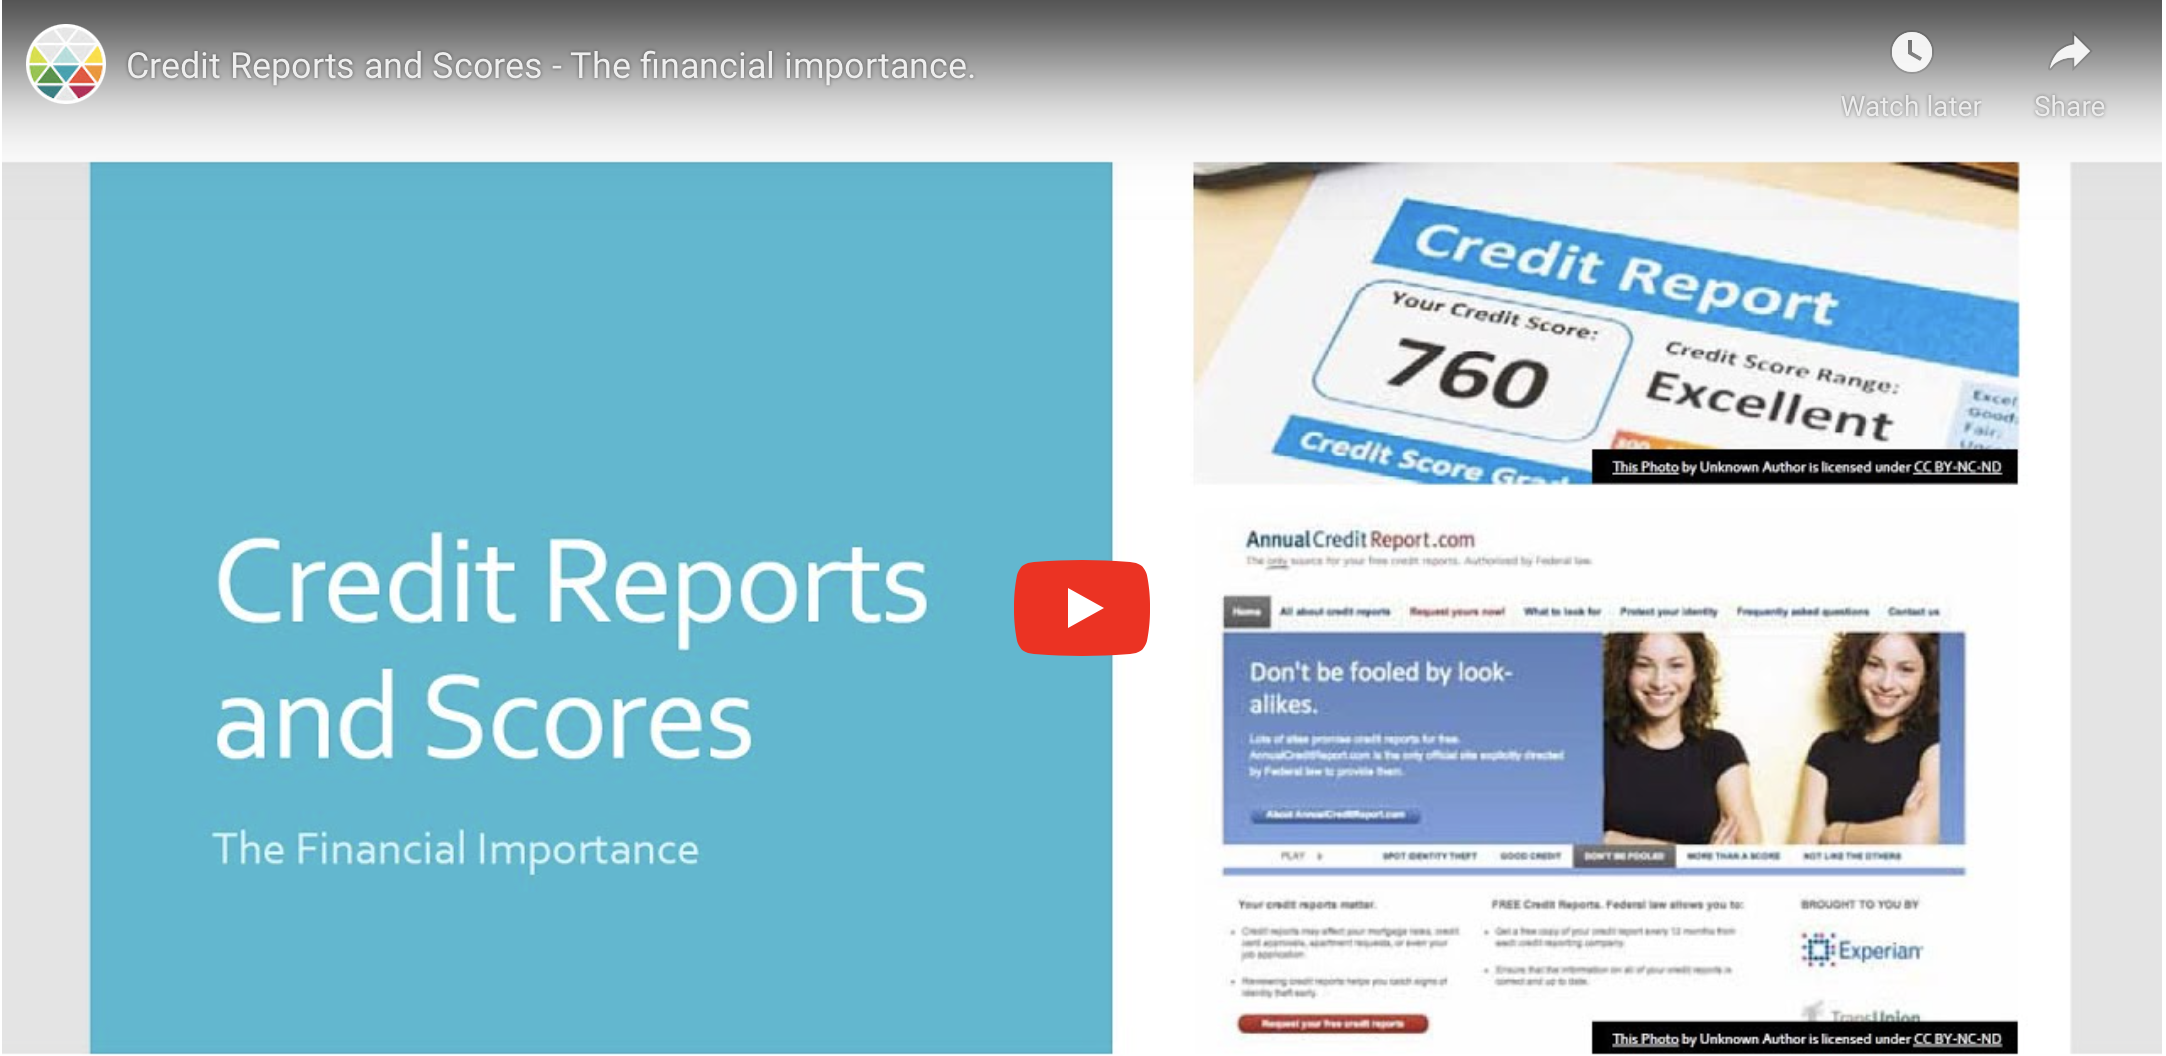 Credit Report and Scores